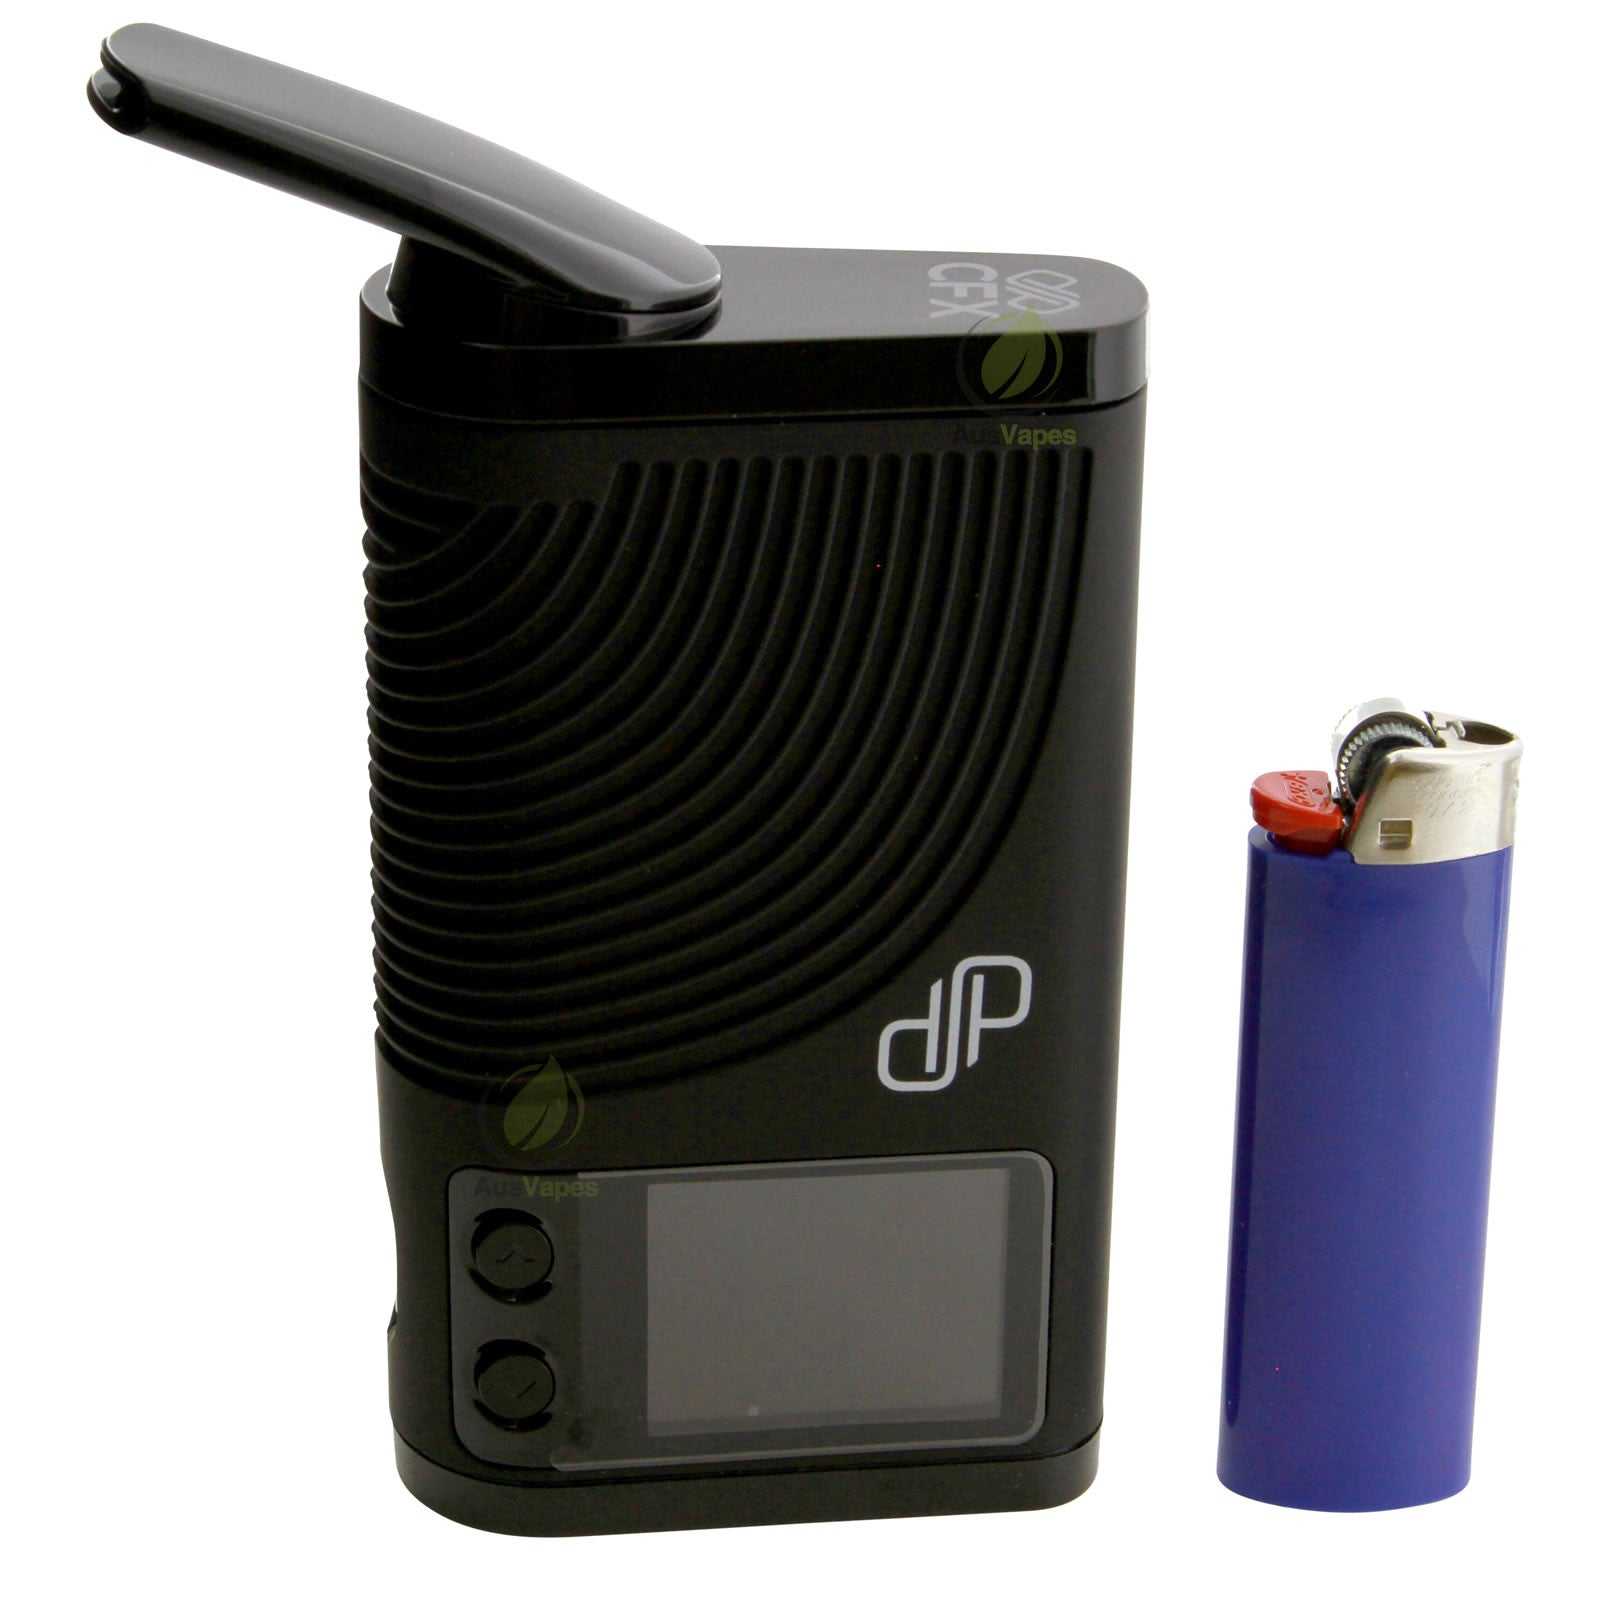 Boundless CFX Vaporizer with lighter